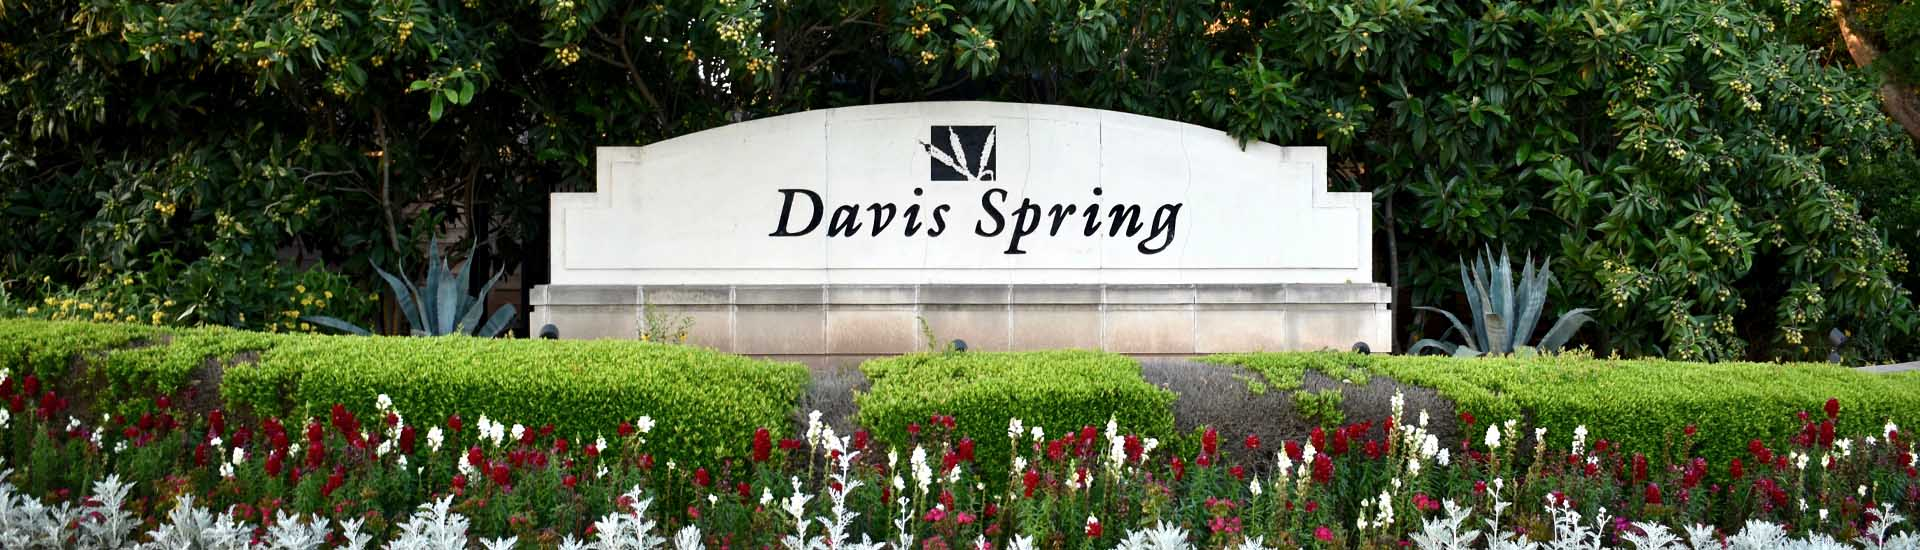 Davis Spring Neighborhood